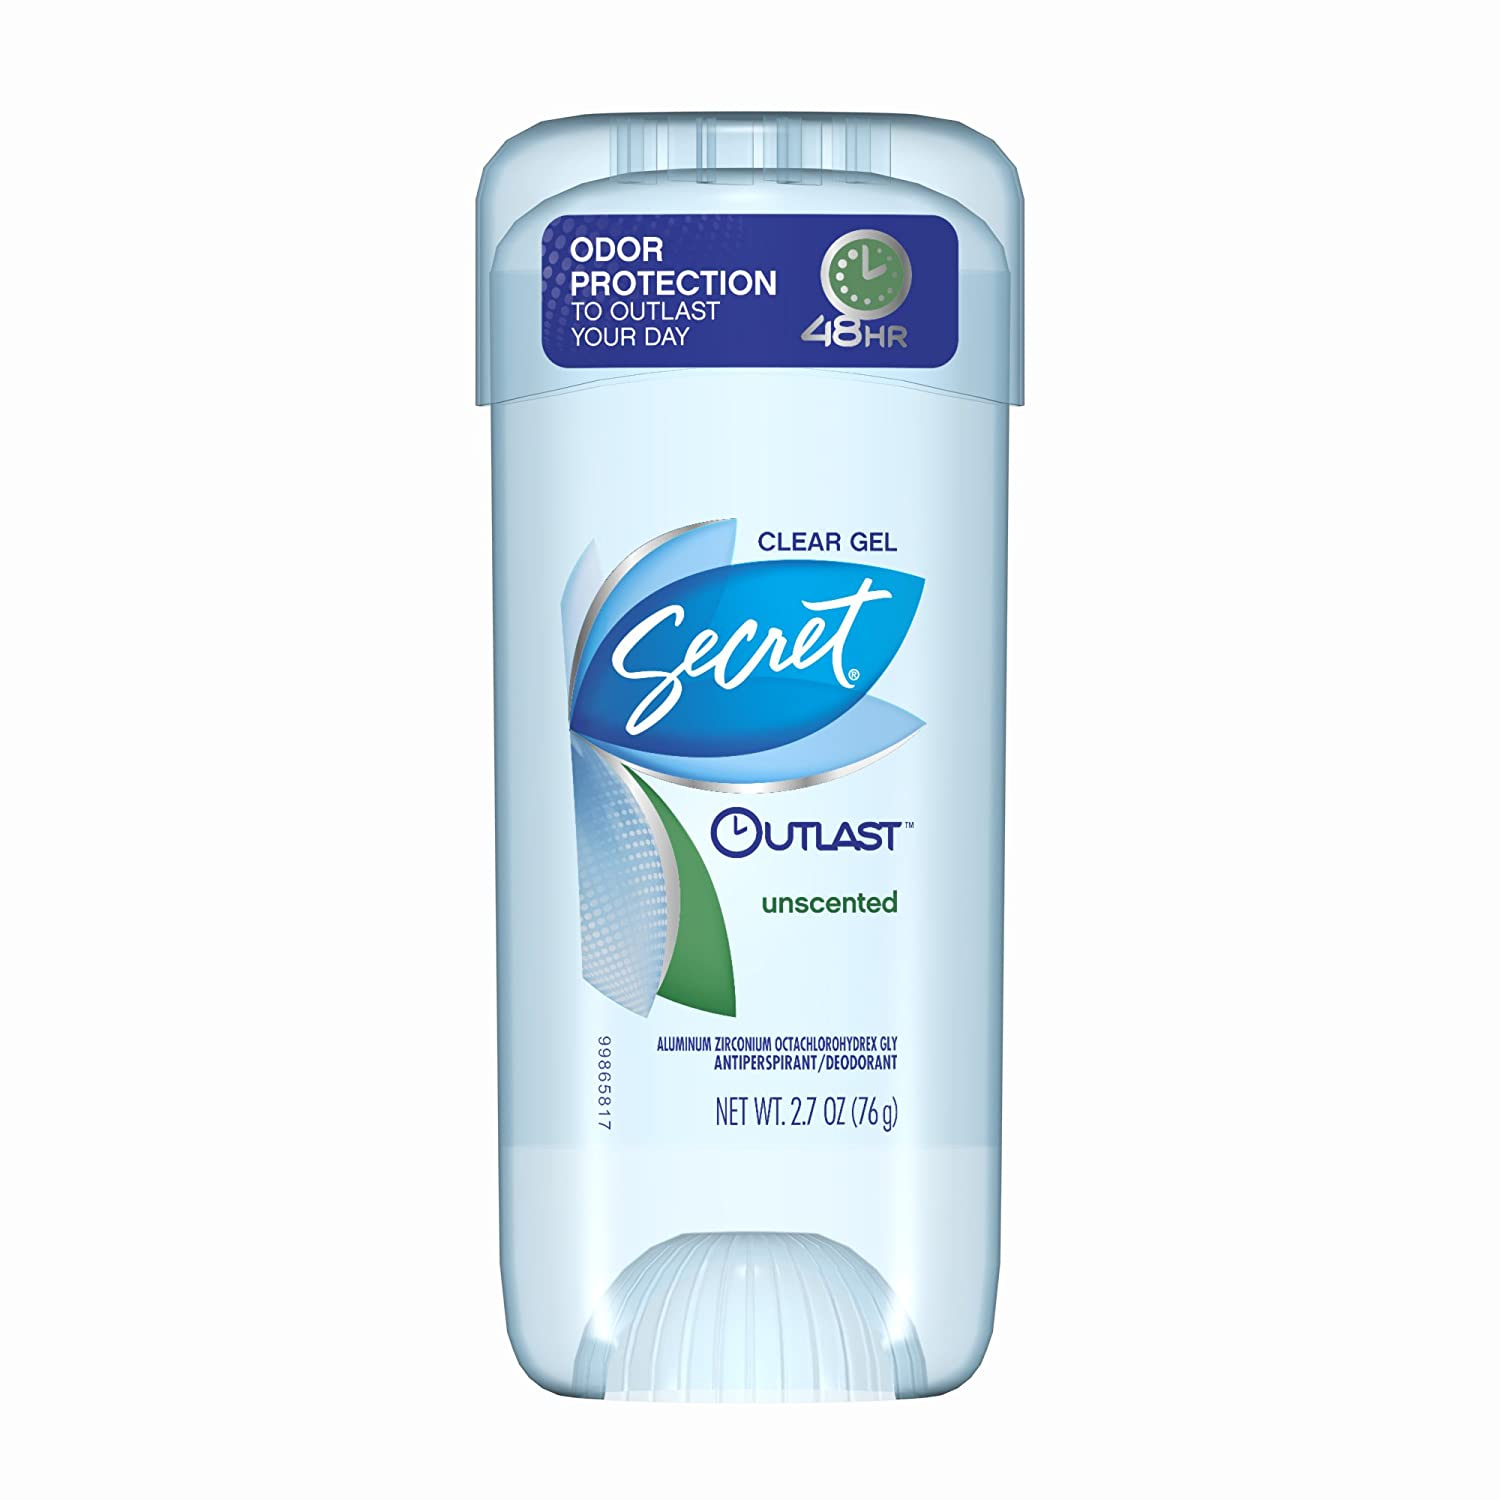 Secret Outlast Clear Gel Antiperspirant